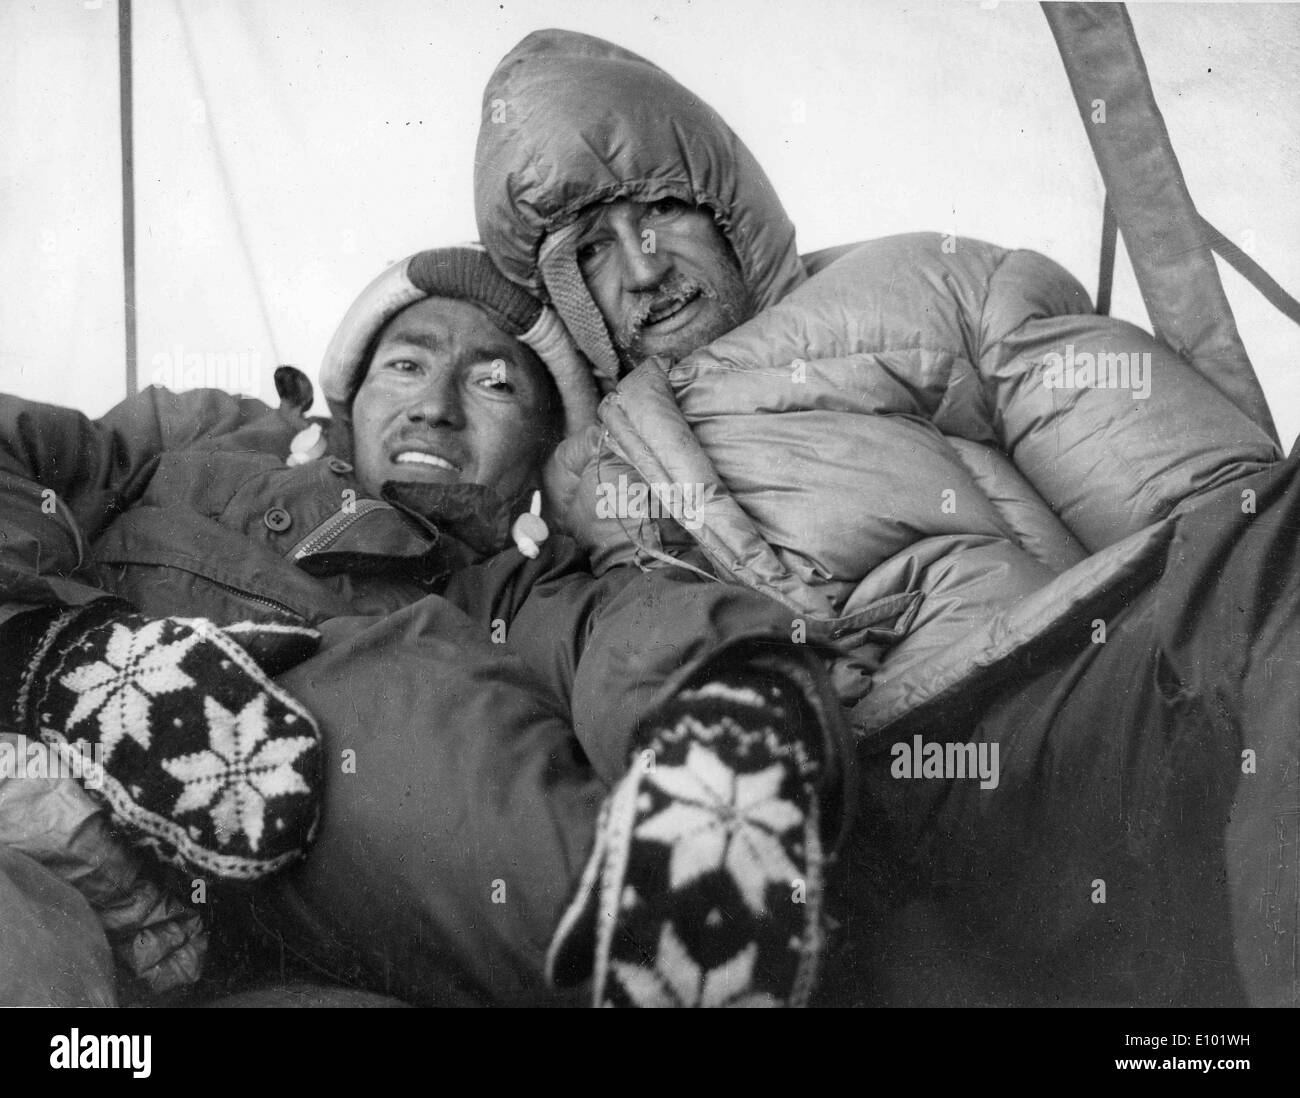 MOUNT EVEREST explorers camping in the Mahalangur section of the Himalayas - Stock Image